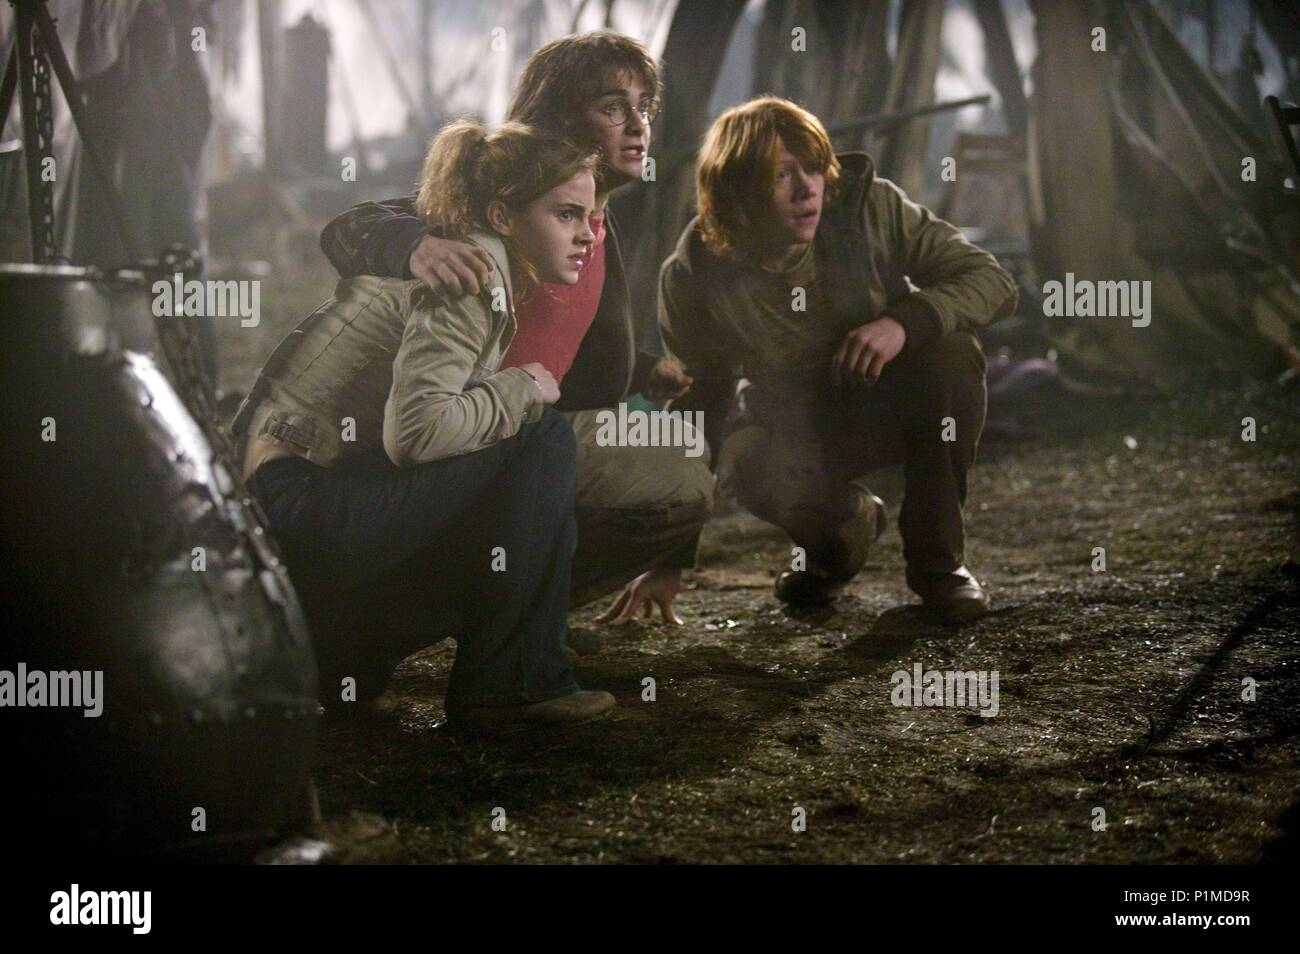 Original Film Title Harry Potter And The Goblet Of Fire English Title Harry Potter And The